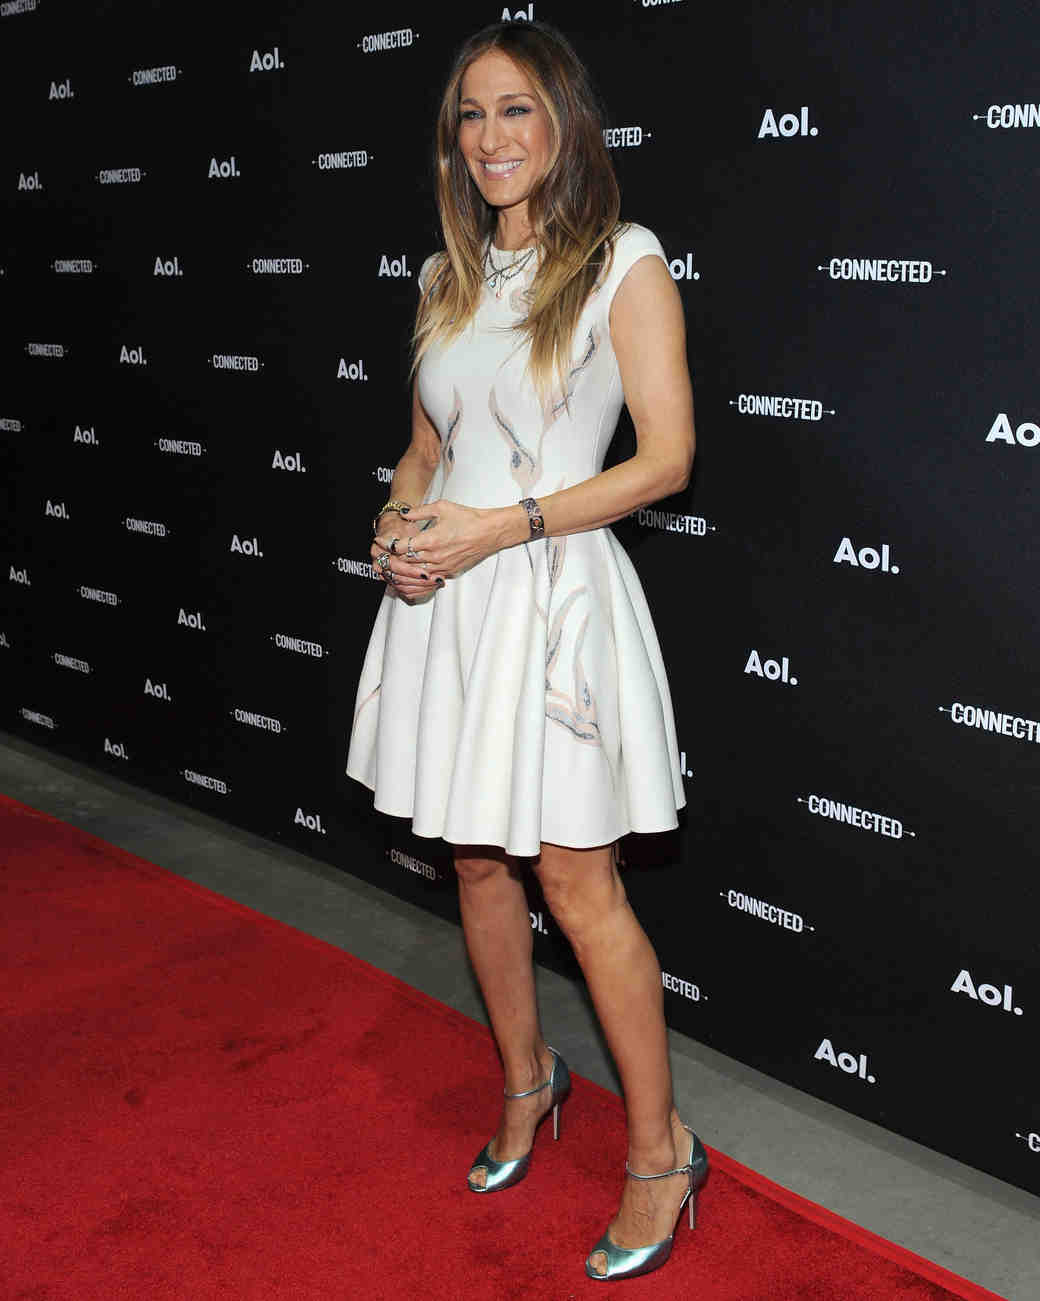 sjp-shoe-roundup-aol-new-fronts-0515.jpg